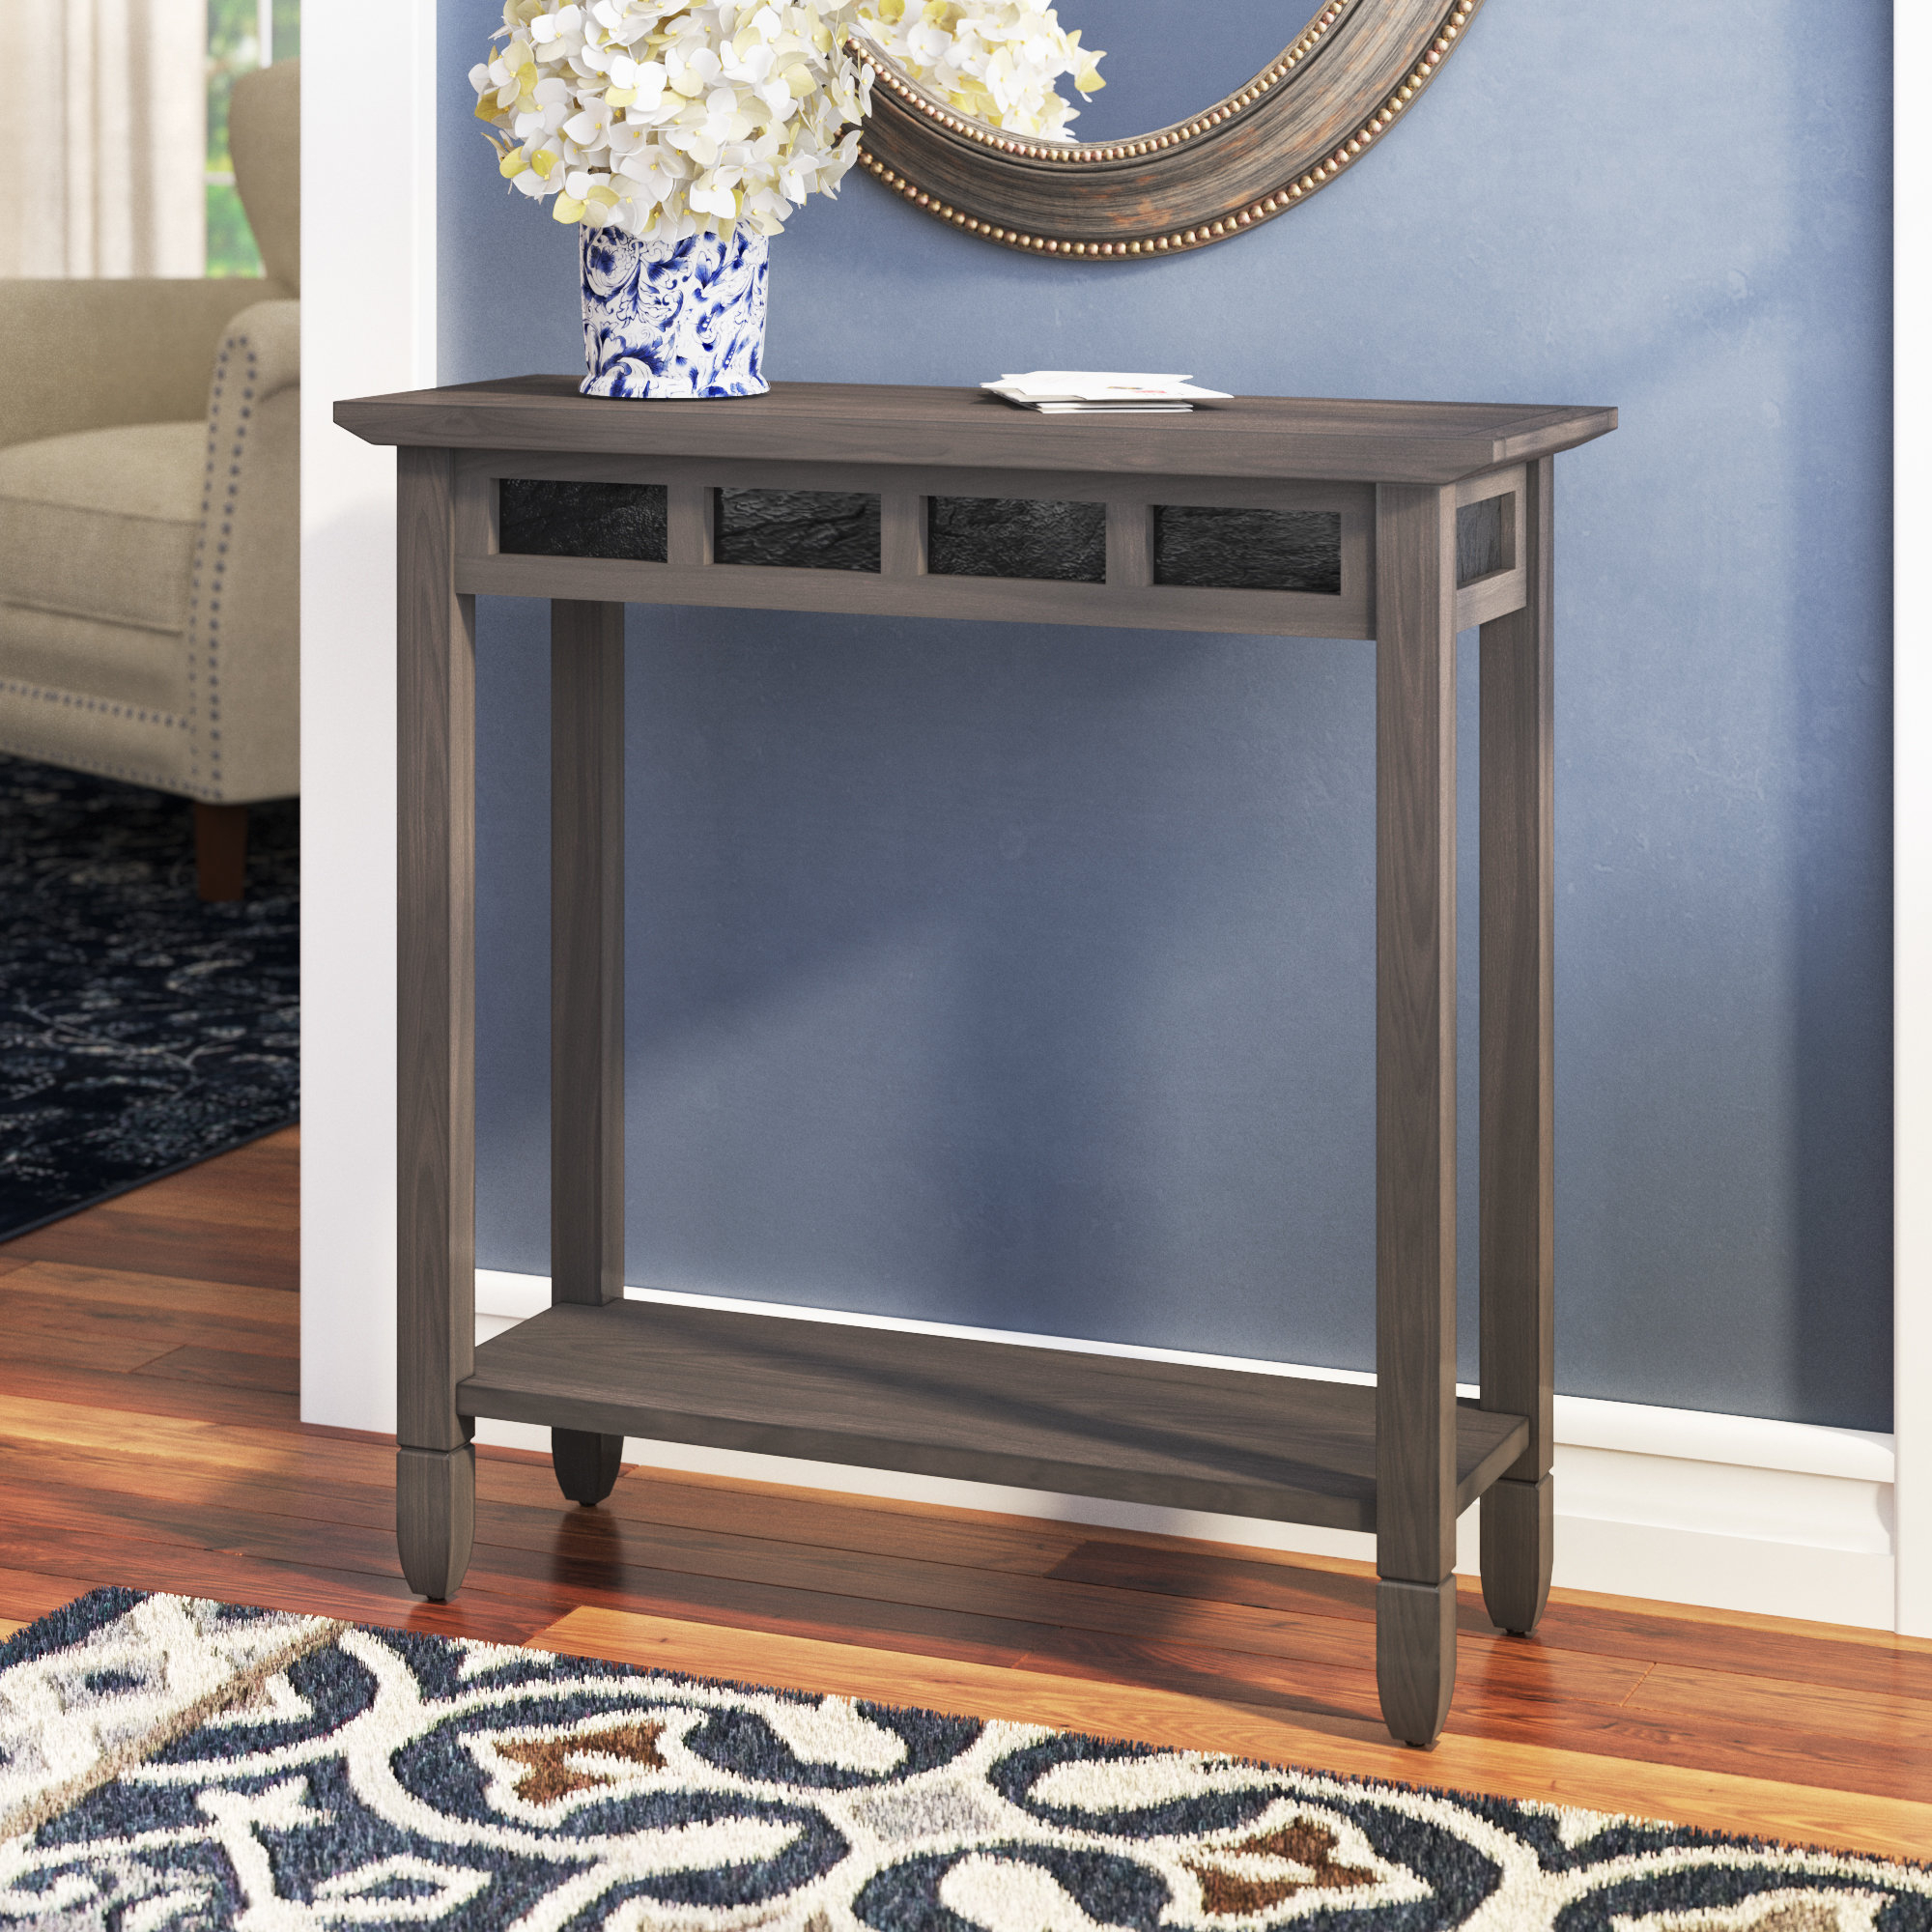 Narrow Console Tables You'll Love | Wayfair With Layered Wood Small Square Console Tables (View 22 of 30)